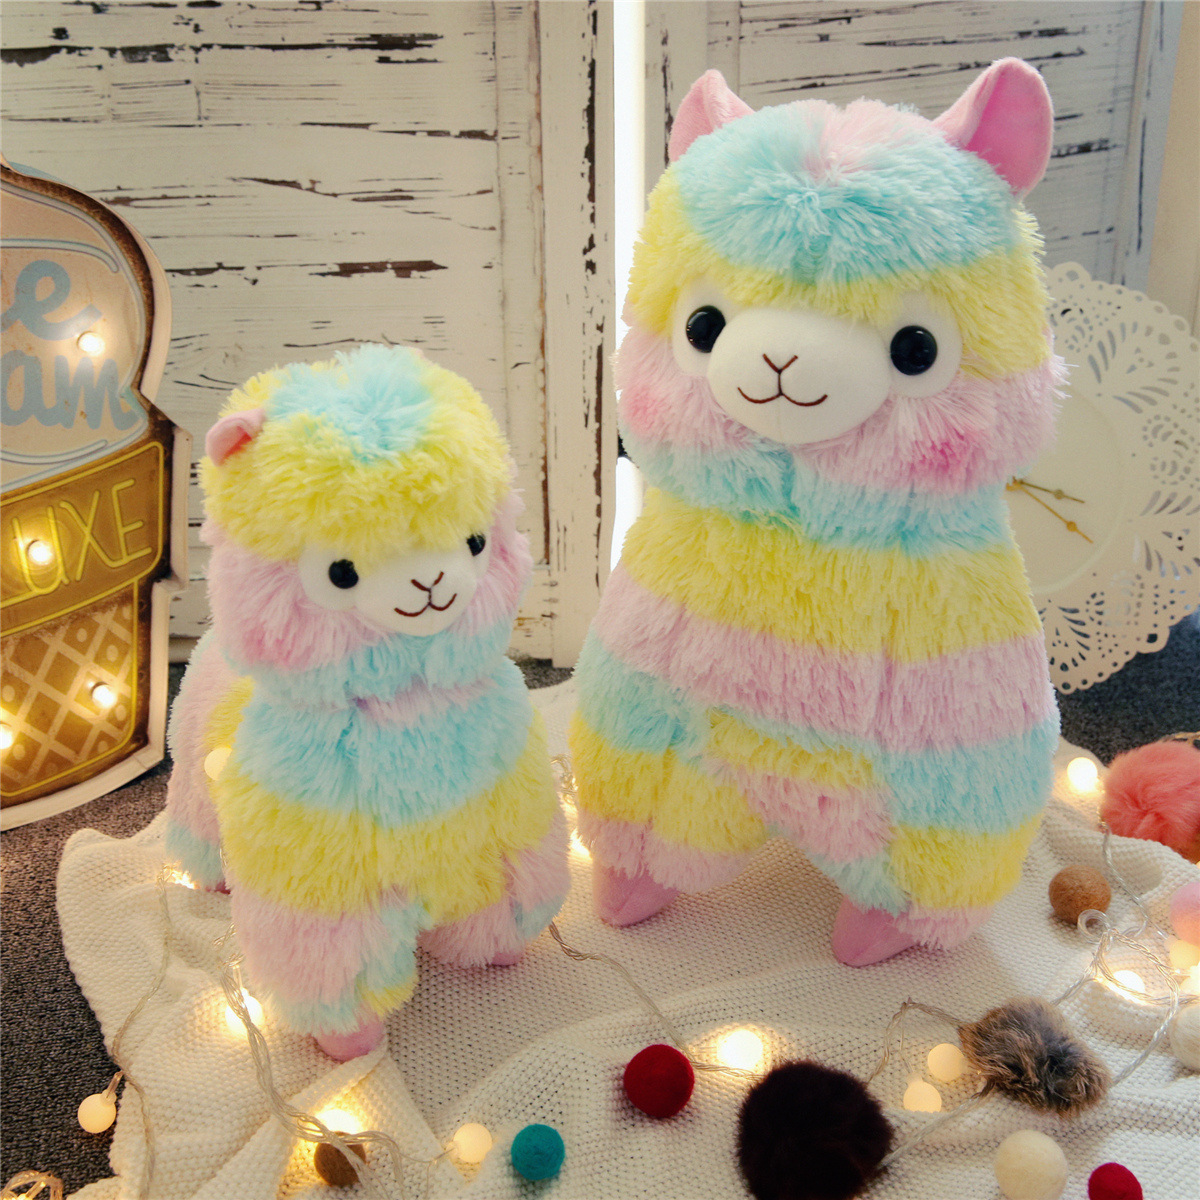 35cm Infant Plush Alpaca Toy Kids Sleeping Cushion Baby Toy Soft Llama Pillow Stuffed Doll Plush Animal Toys For Children Gifts welcome customer apron sheep alpaca maid servant plush toy stuffed doll gift for baby kids children girlfriend baby present